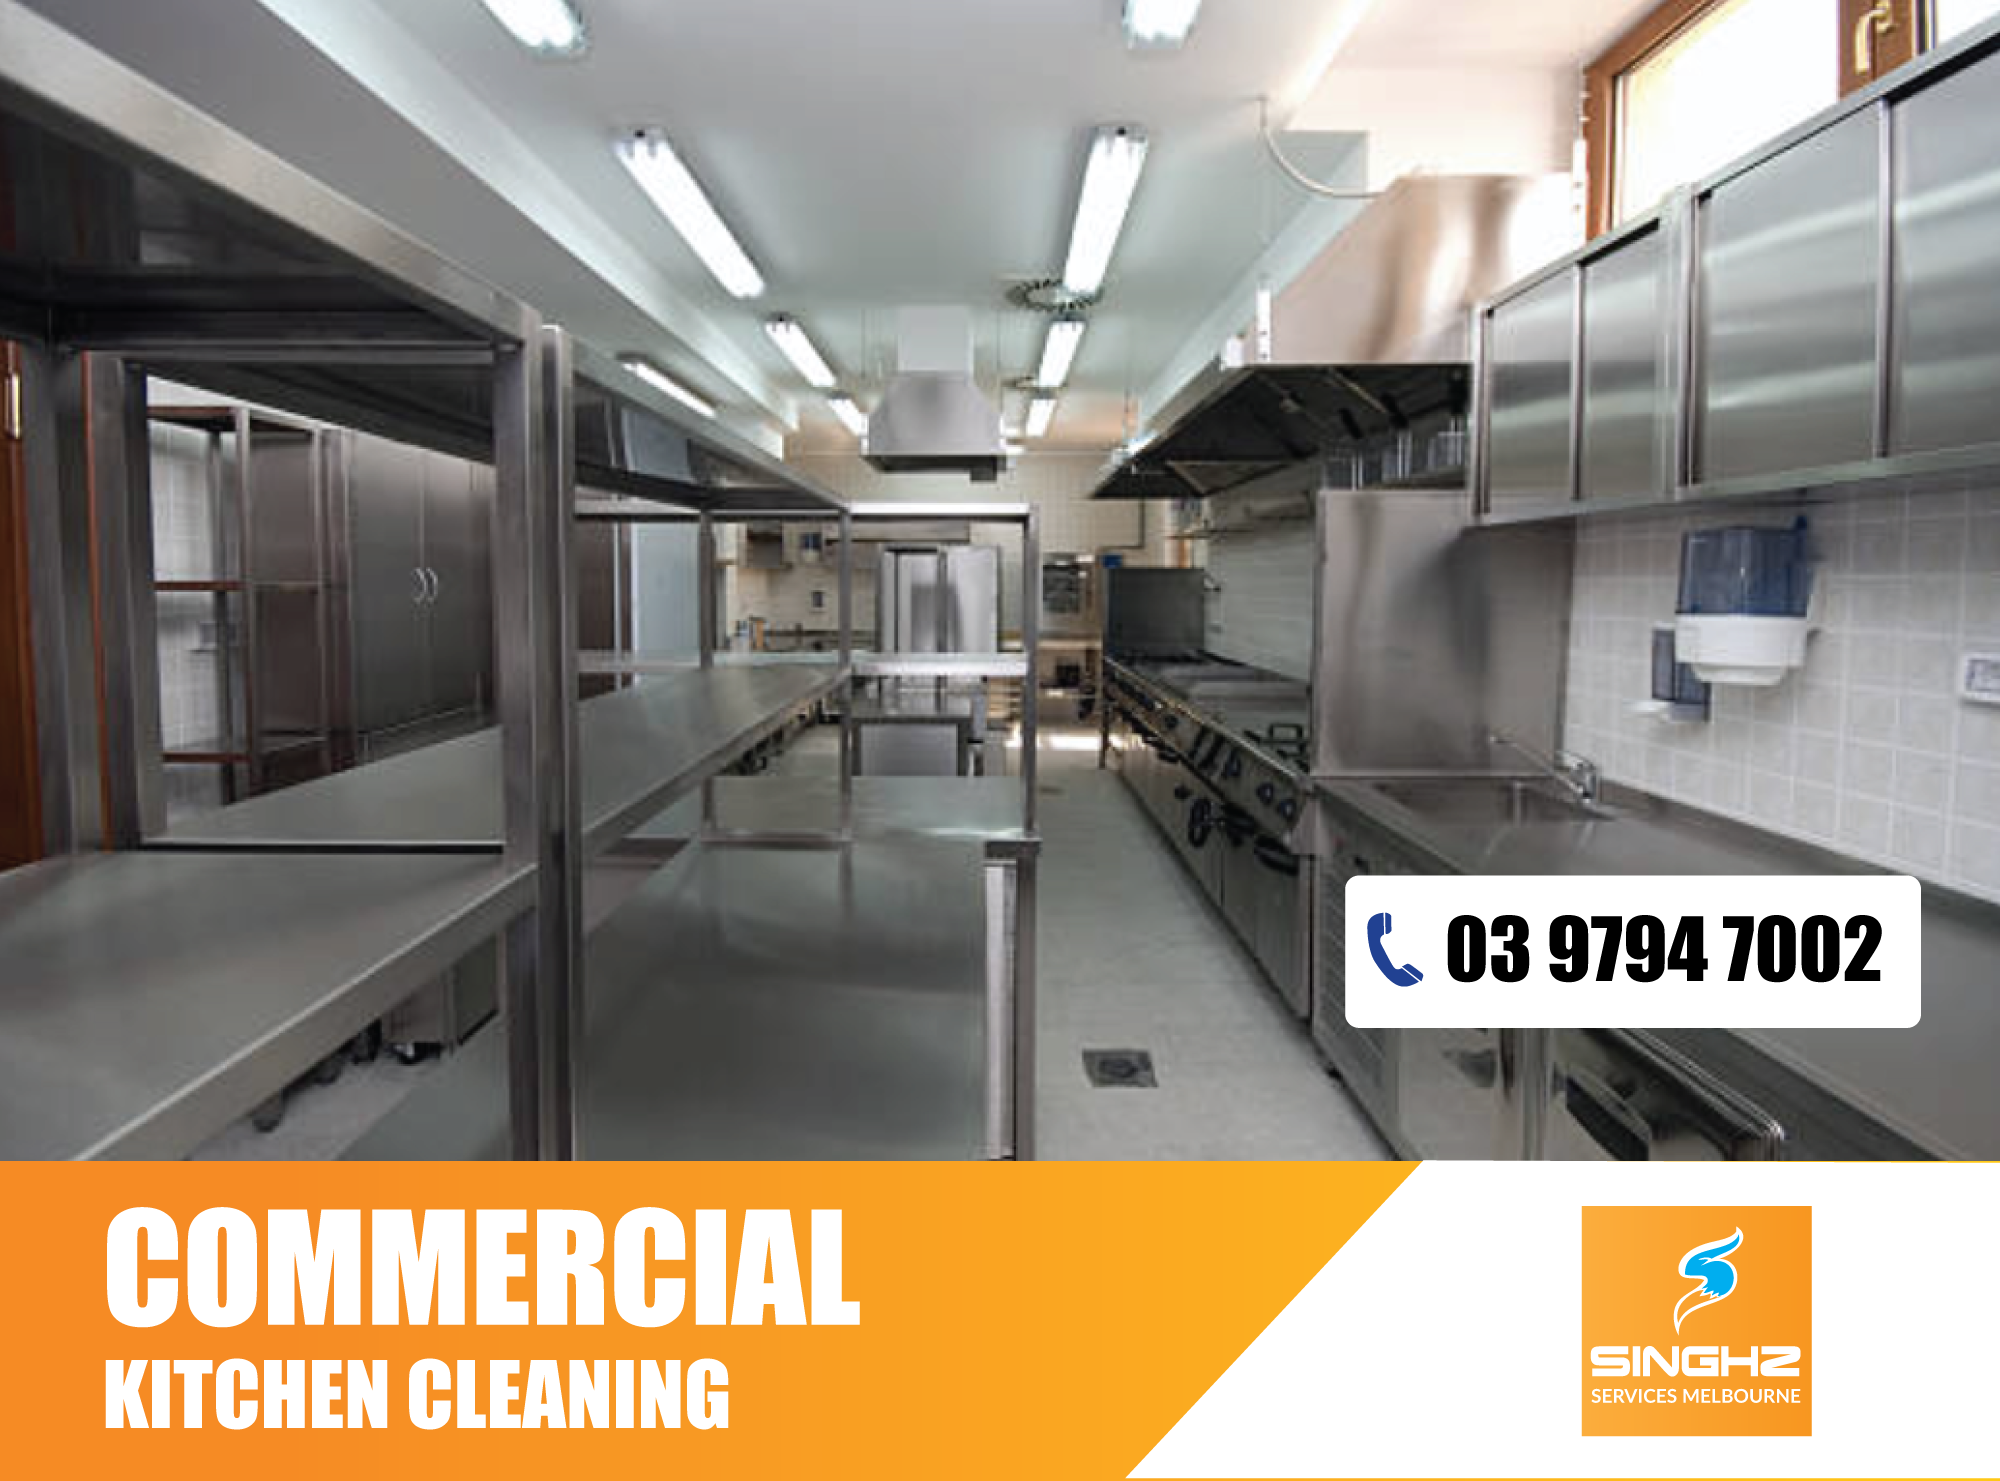 Commercial Kitchen Exhaust System Design Cool Singhz Commercial Kitchen Canopy Cleaning Services Provide A Full Design Inspiration